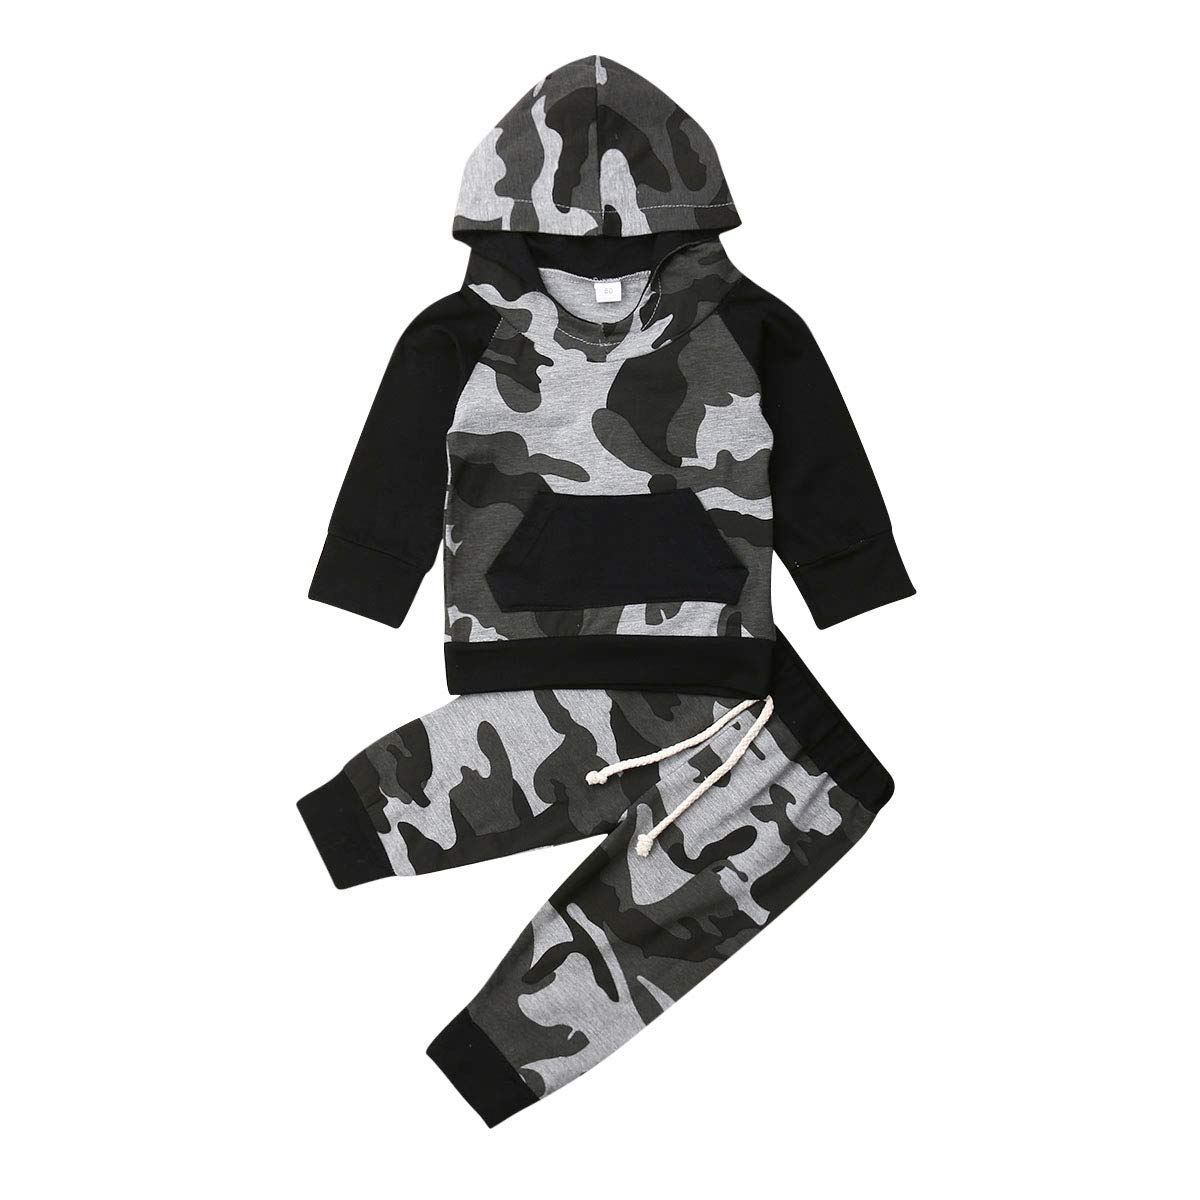 oklady Baby Boy Clothes Letter Print Hoodies Long Camouflage Pants 2PCS Outfits Set